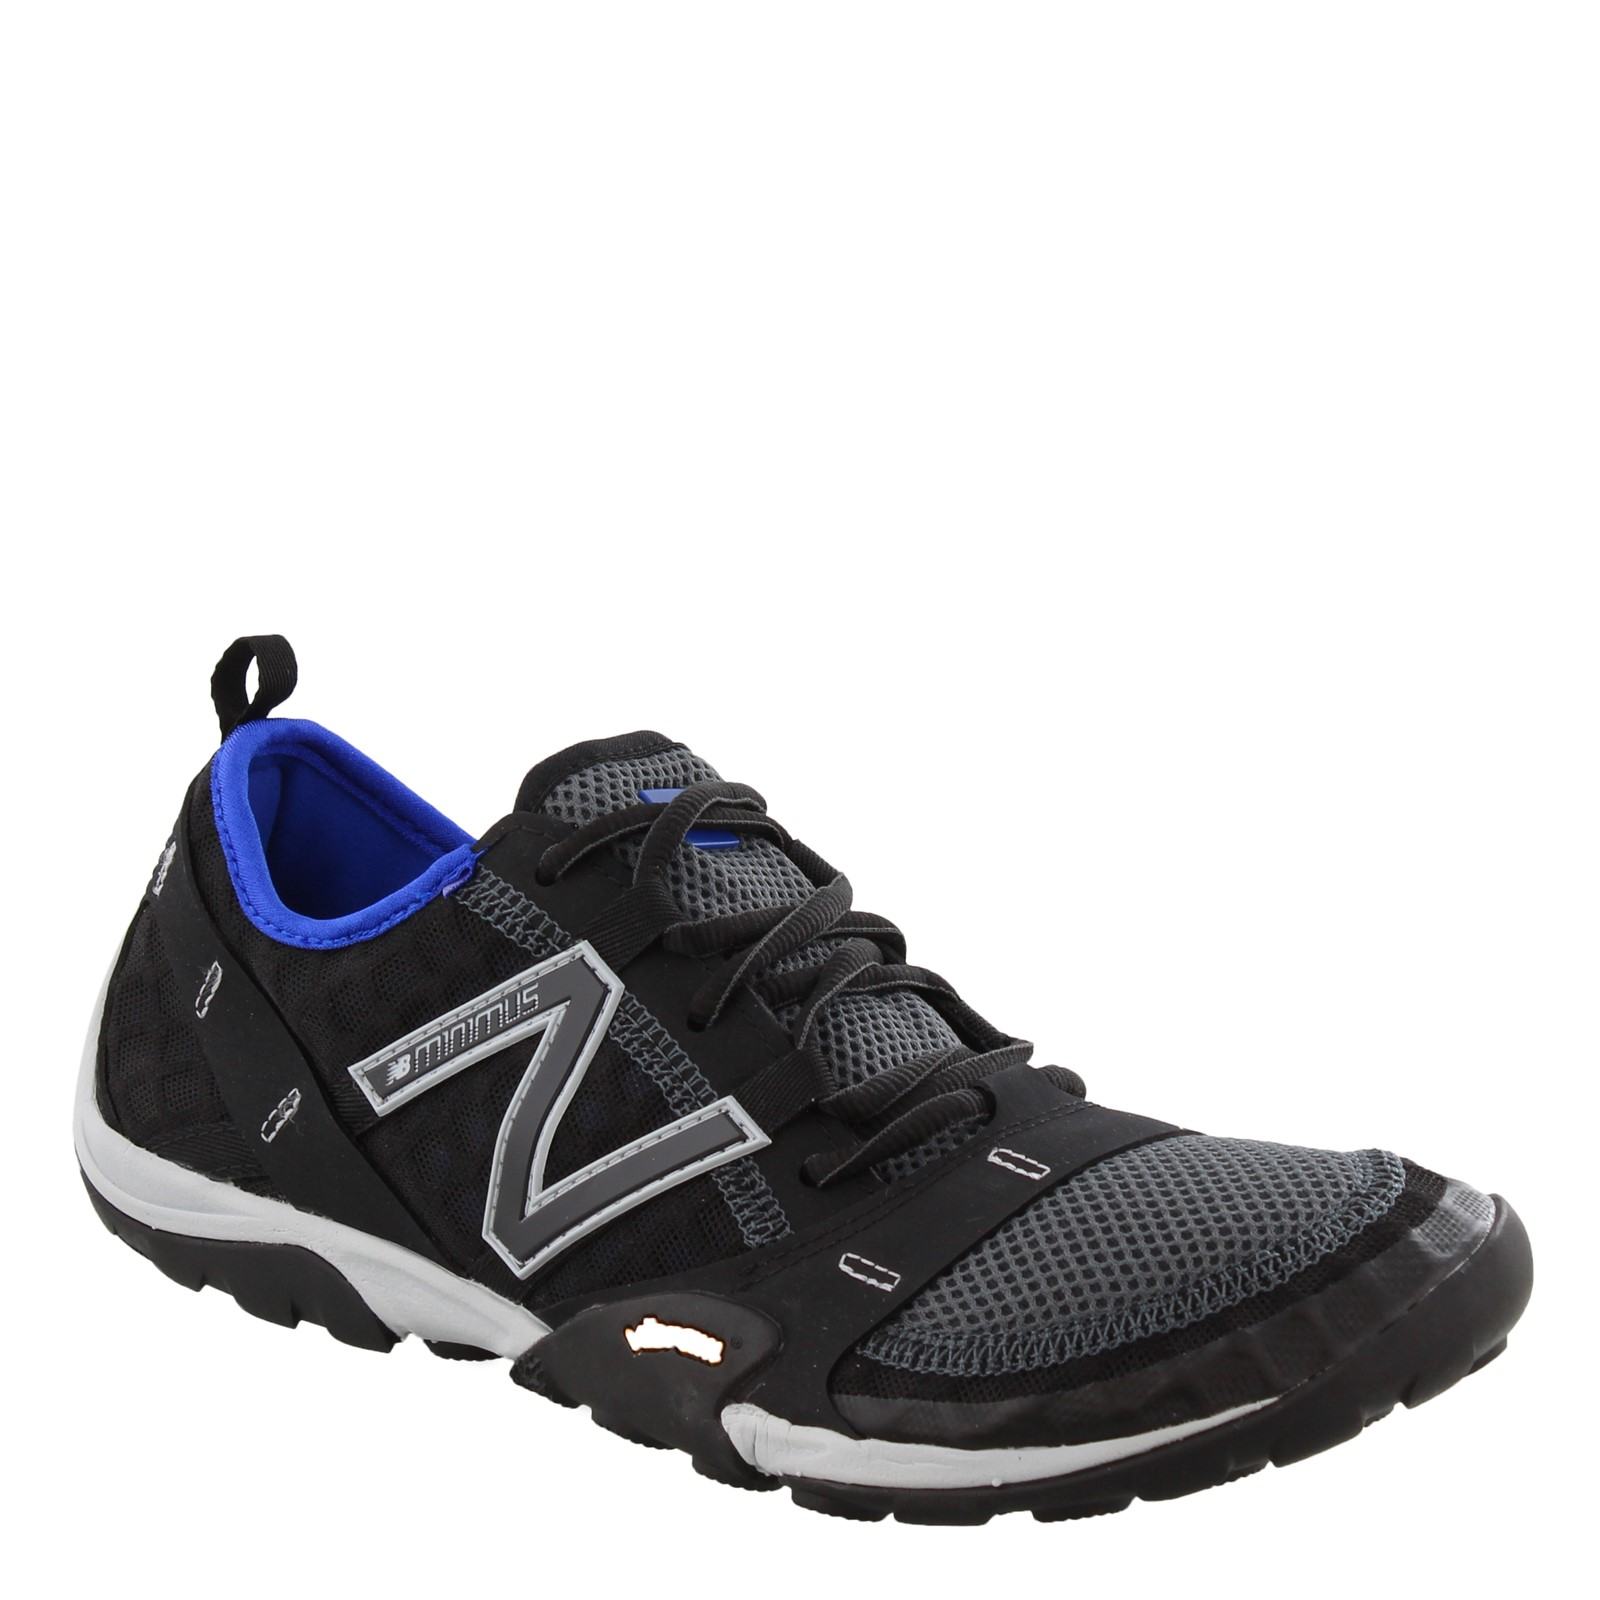 taille 40 c0146 20a1f Men's, New Balance, Minimus MT10v1 Running